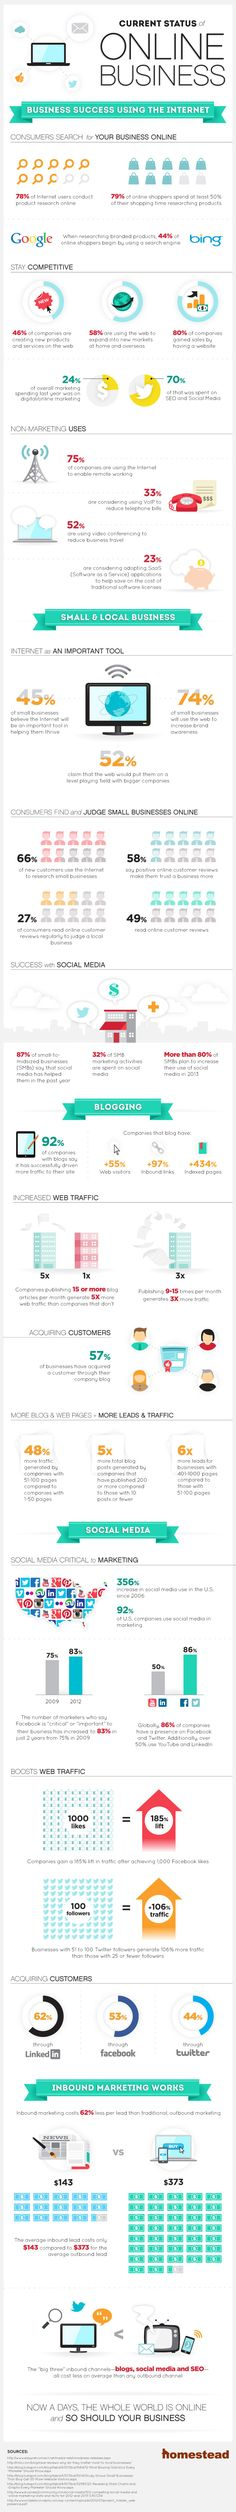 #SocialMedia #Infographics - Current Status of Online Business